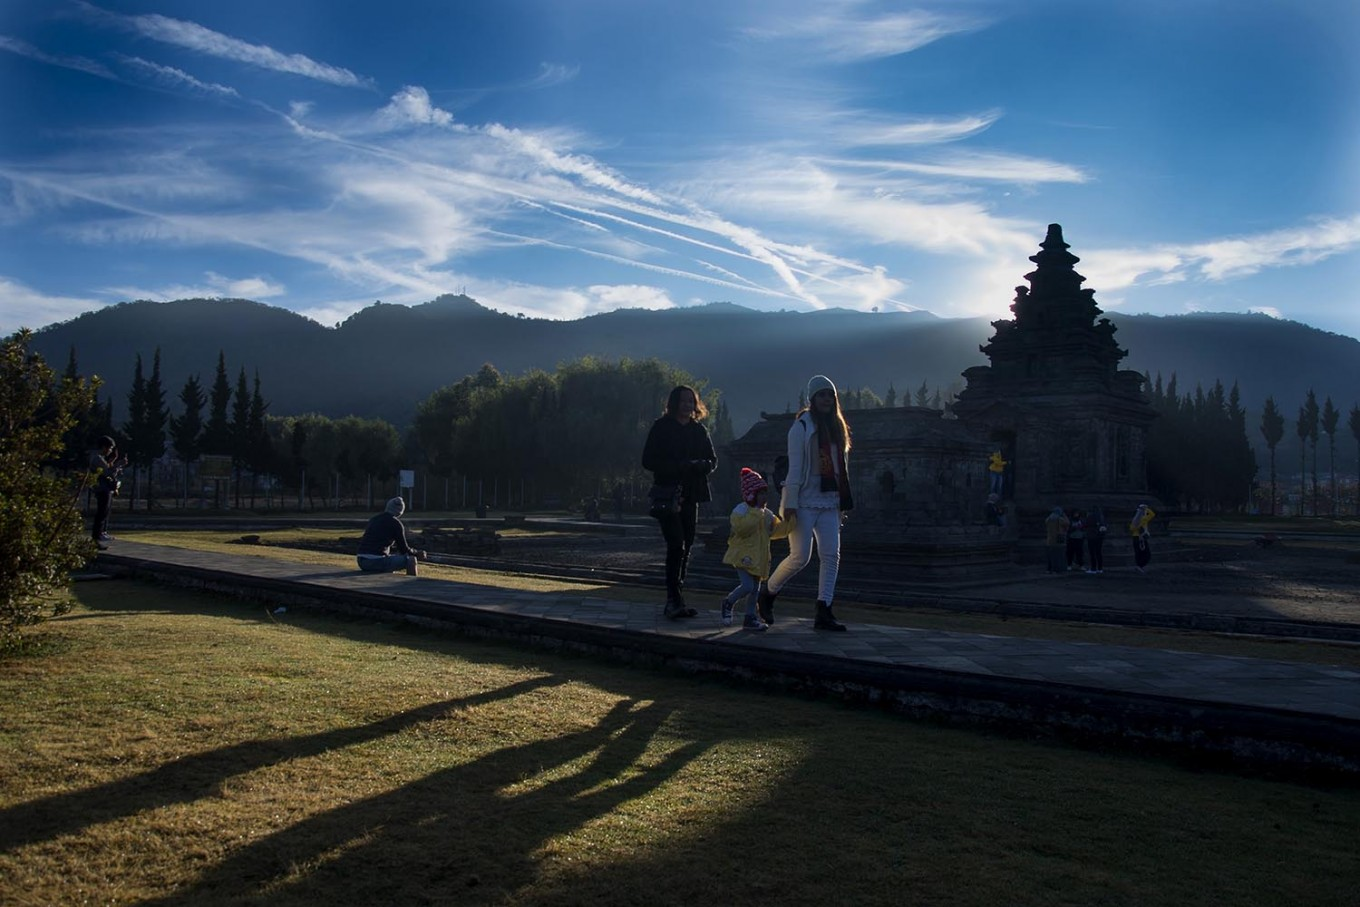 Visitors stick close together as they stroll through the Arjuna temple complex in the morning. JP/Tarko Sudiarno